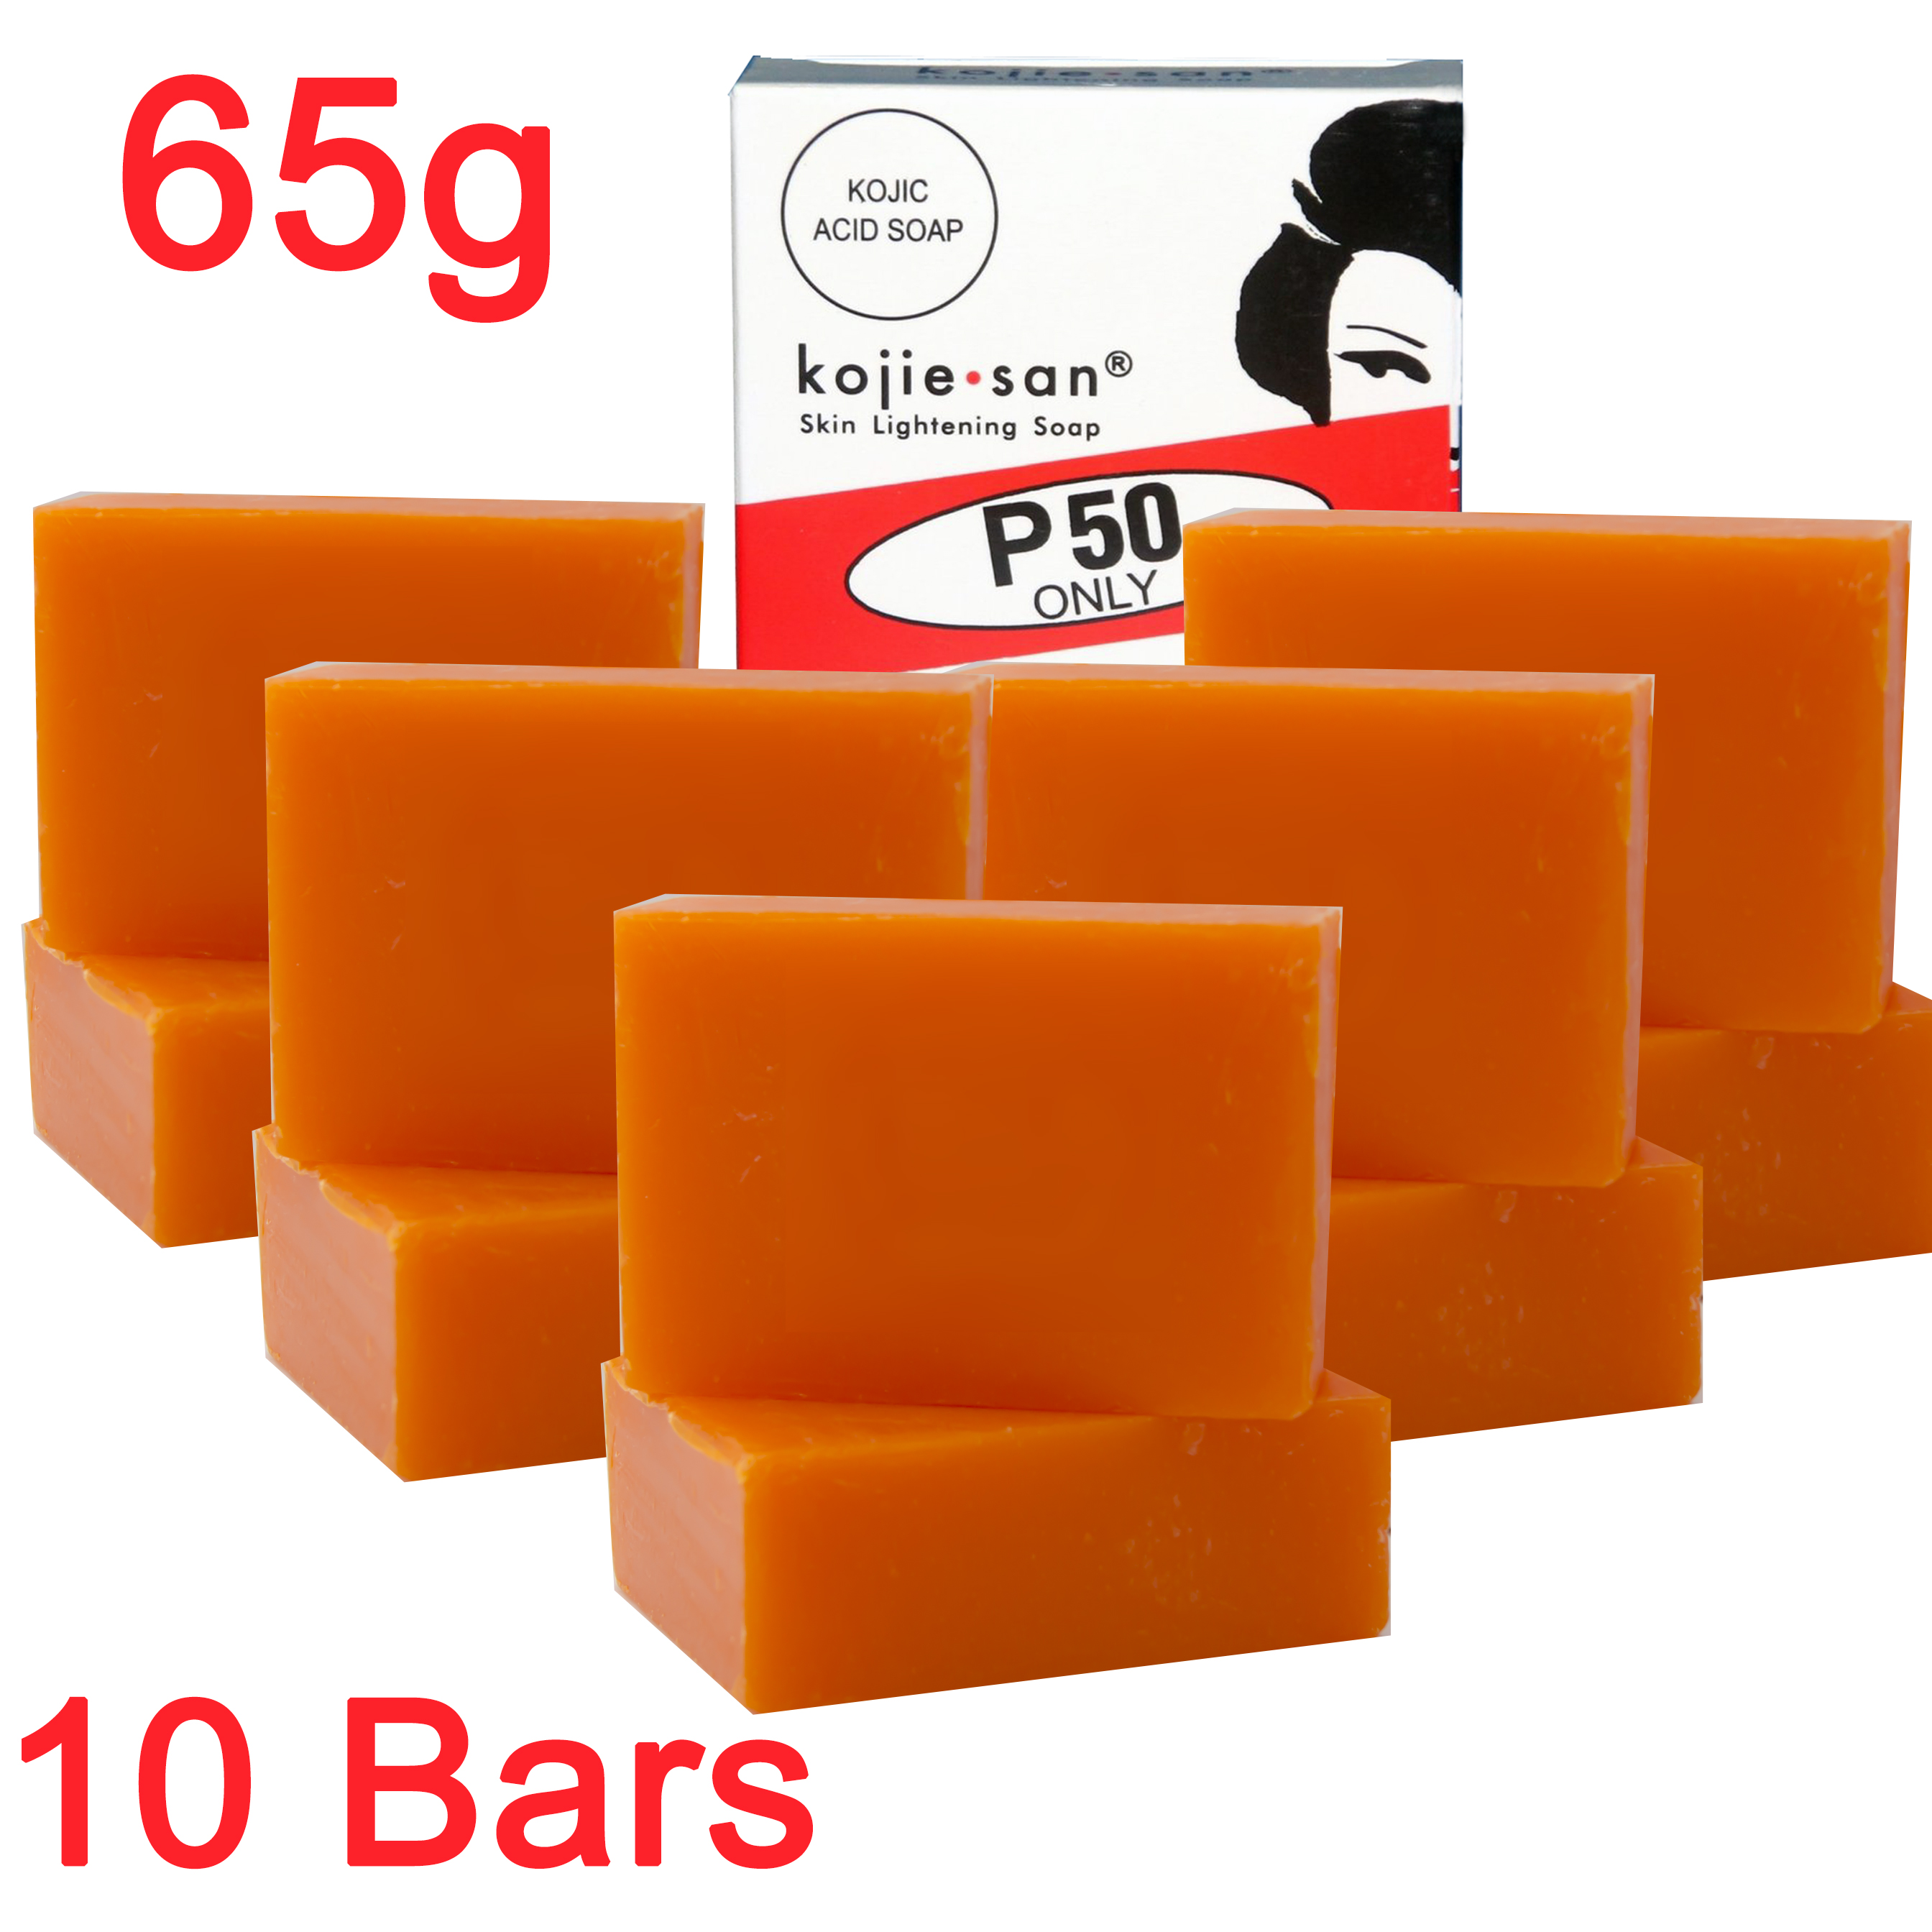 Kojie San Skin Lightening Kojic Acid Soap 2 Bars 65g